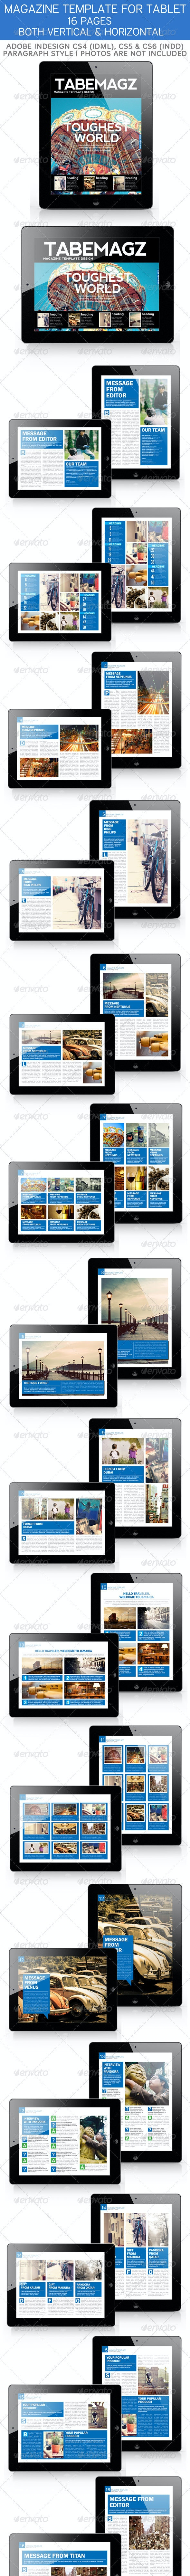 Tabemagz Magazine Template for Tablet - Magazines Print Templates